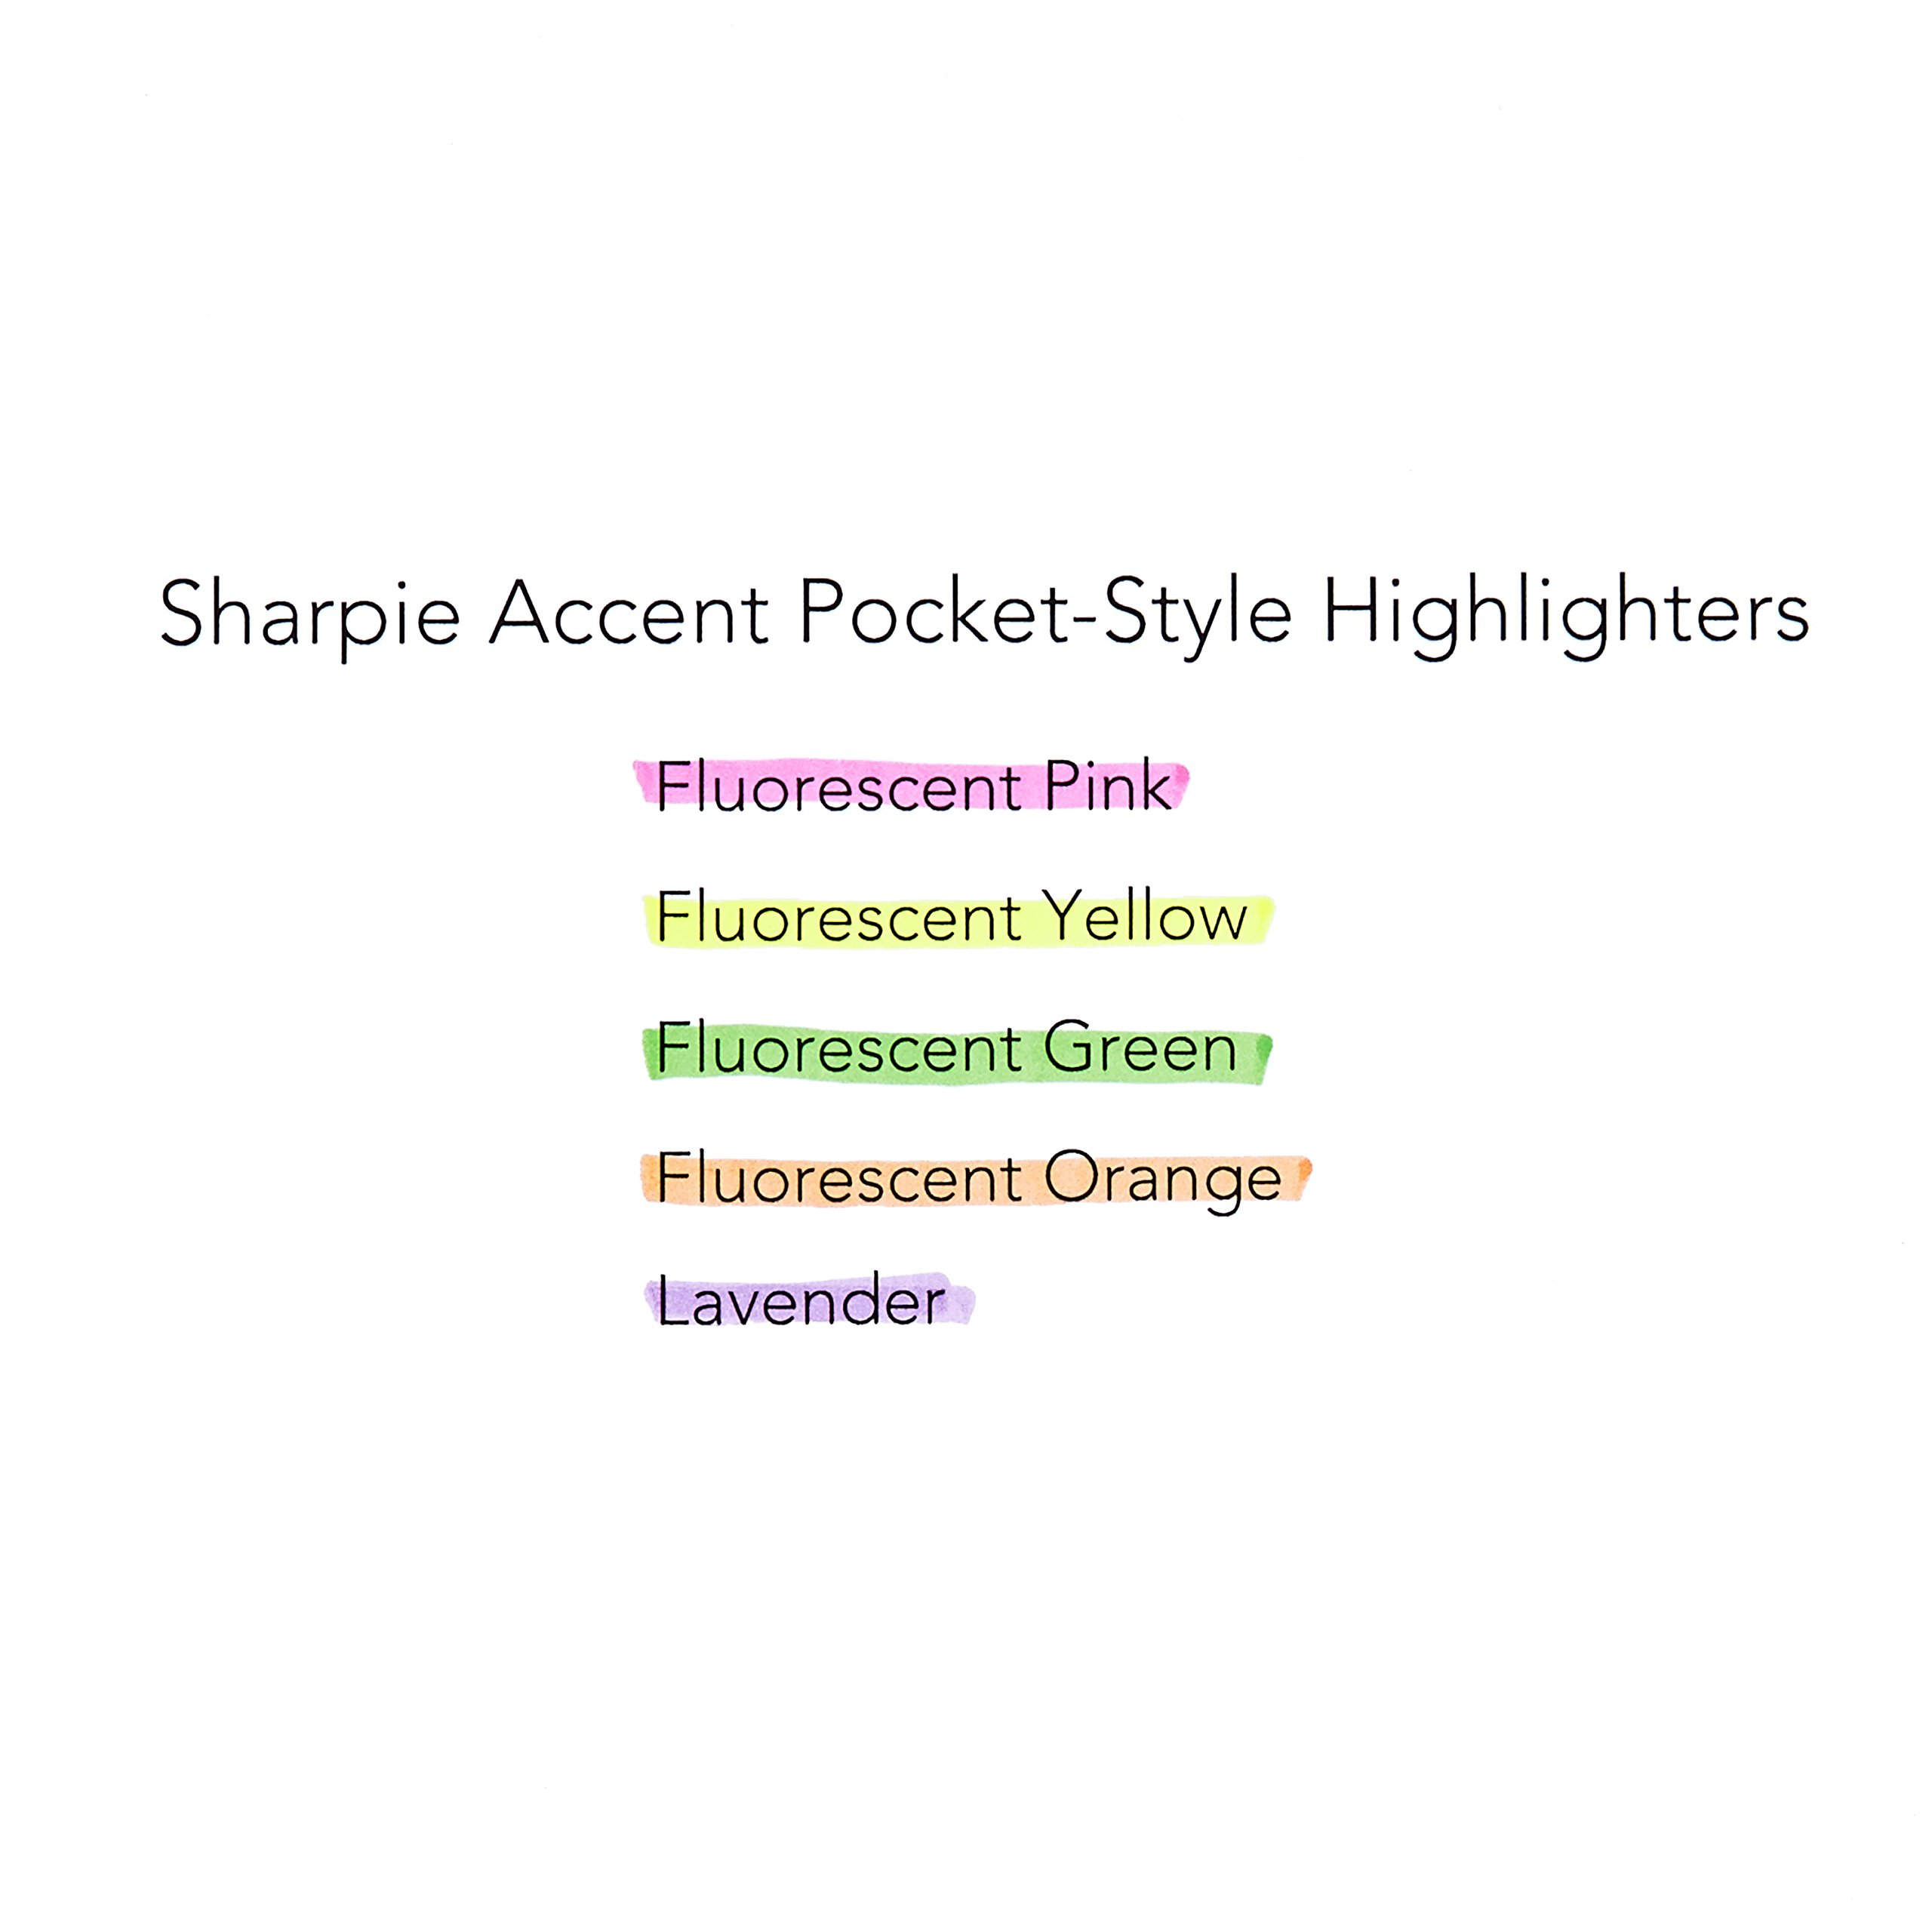 Sharpie 1761732 Accent Pocket Style Highlighter, Fluorescent Yellow, 24-Pack by Sharpie (Image #4)